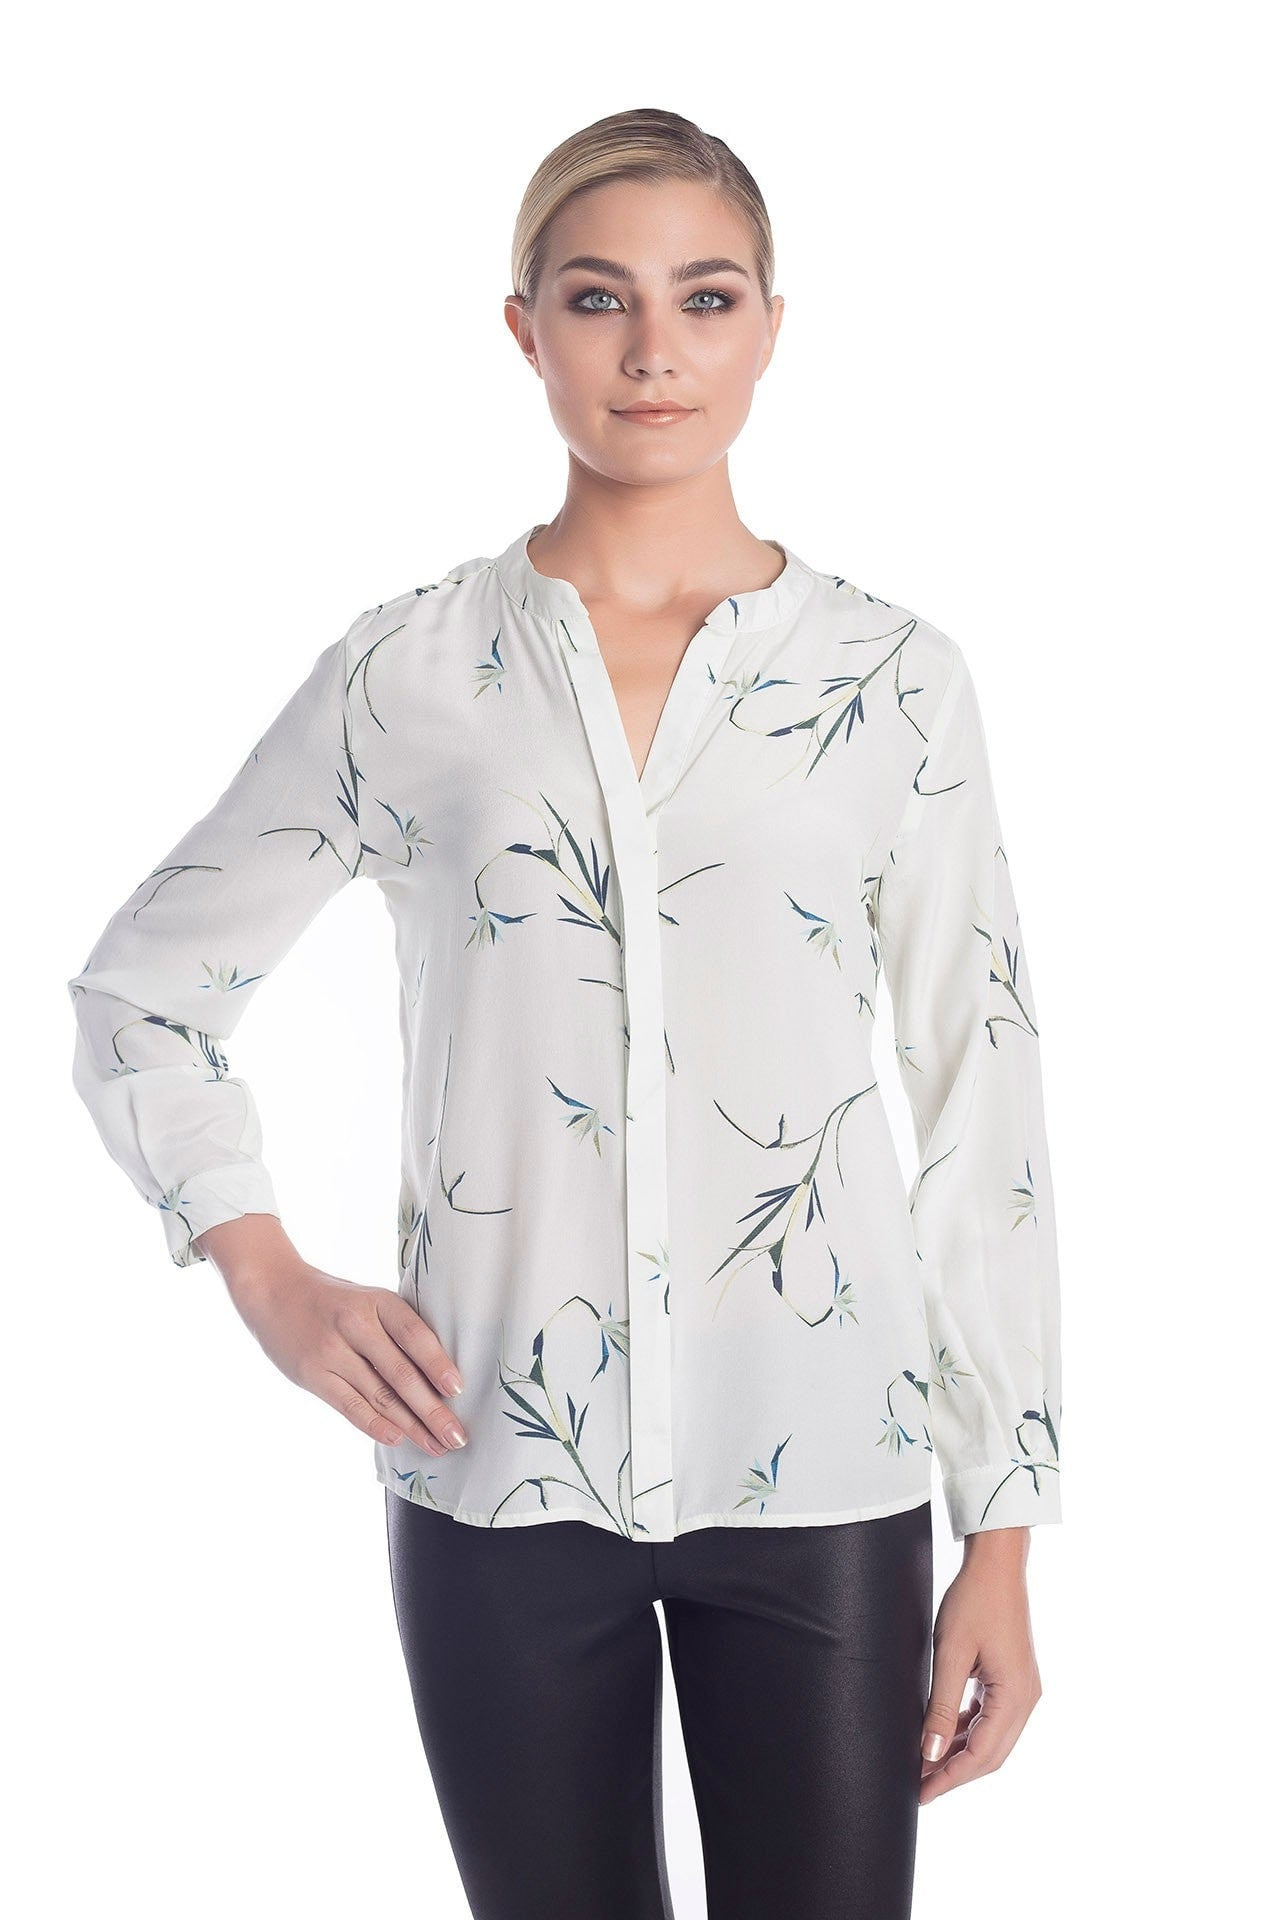 Front view of our dainty and feminine classy women's clothing line. The main visible blouse is white silk with a repeated pattern.